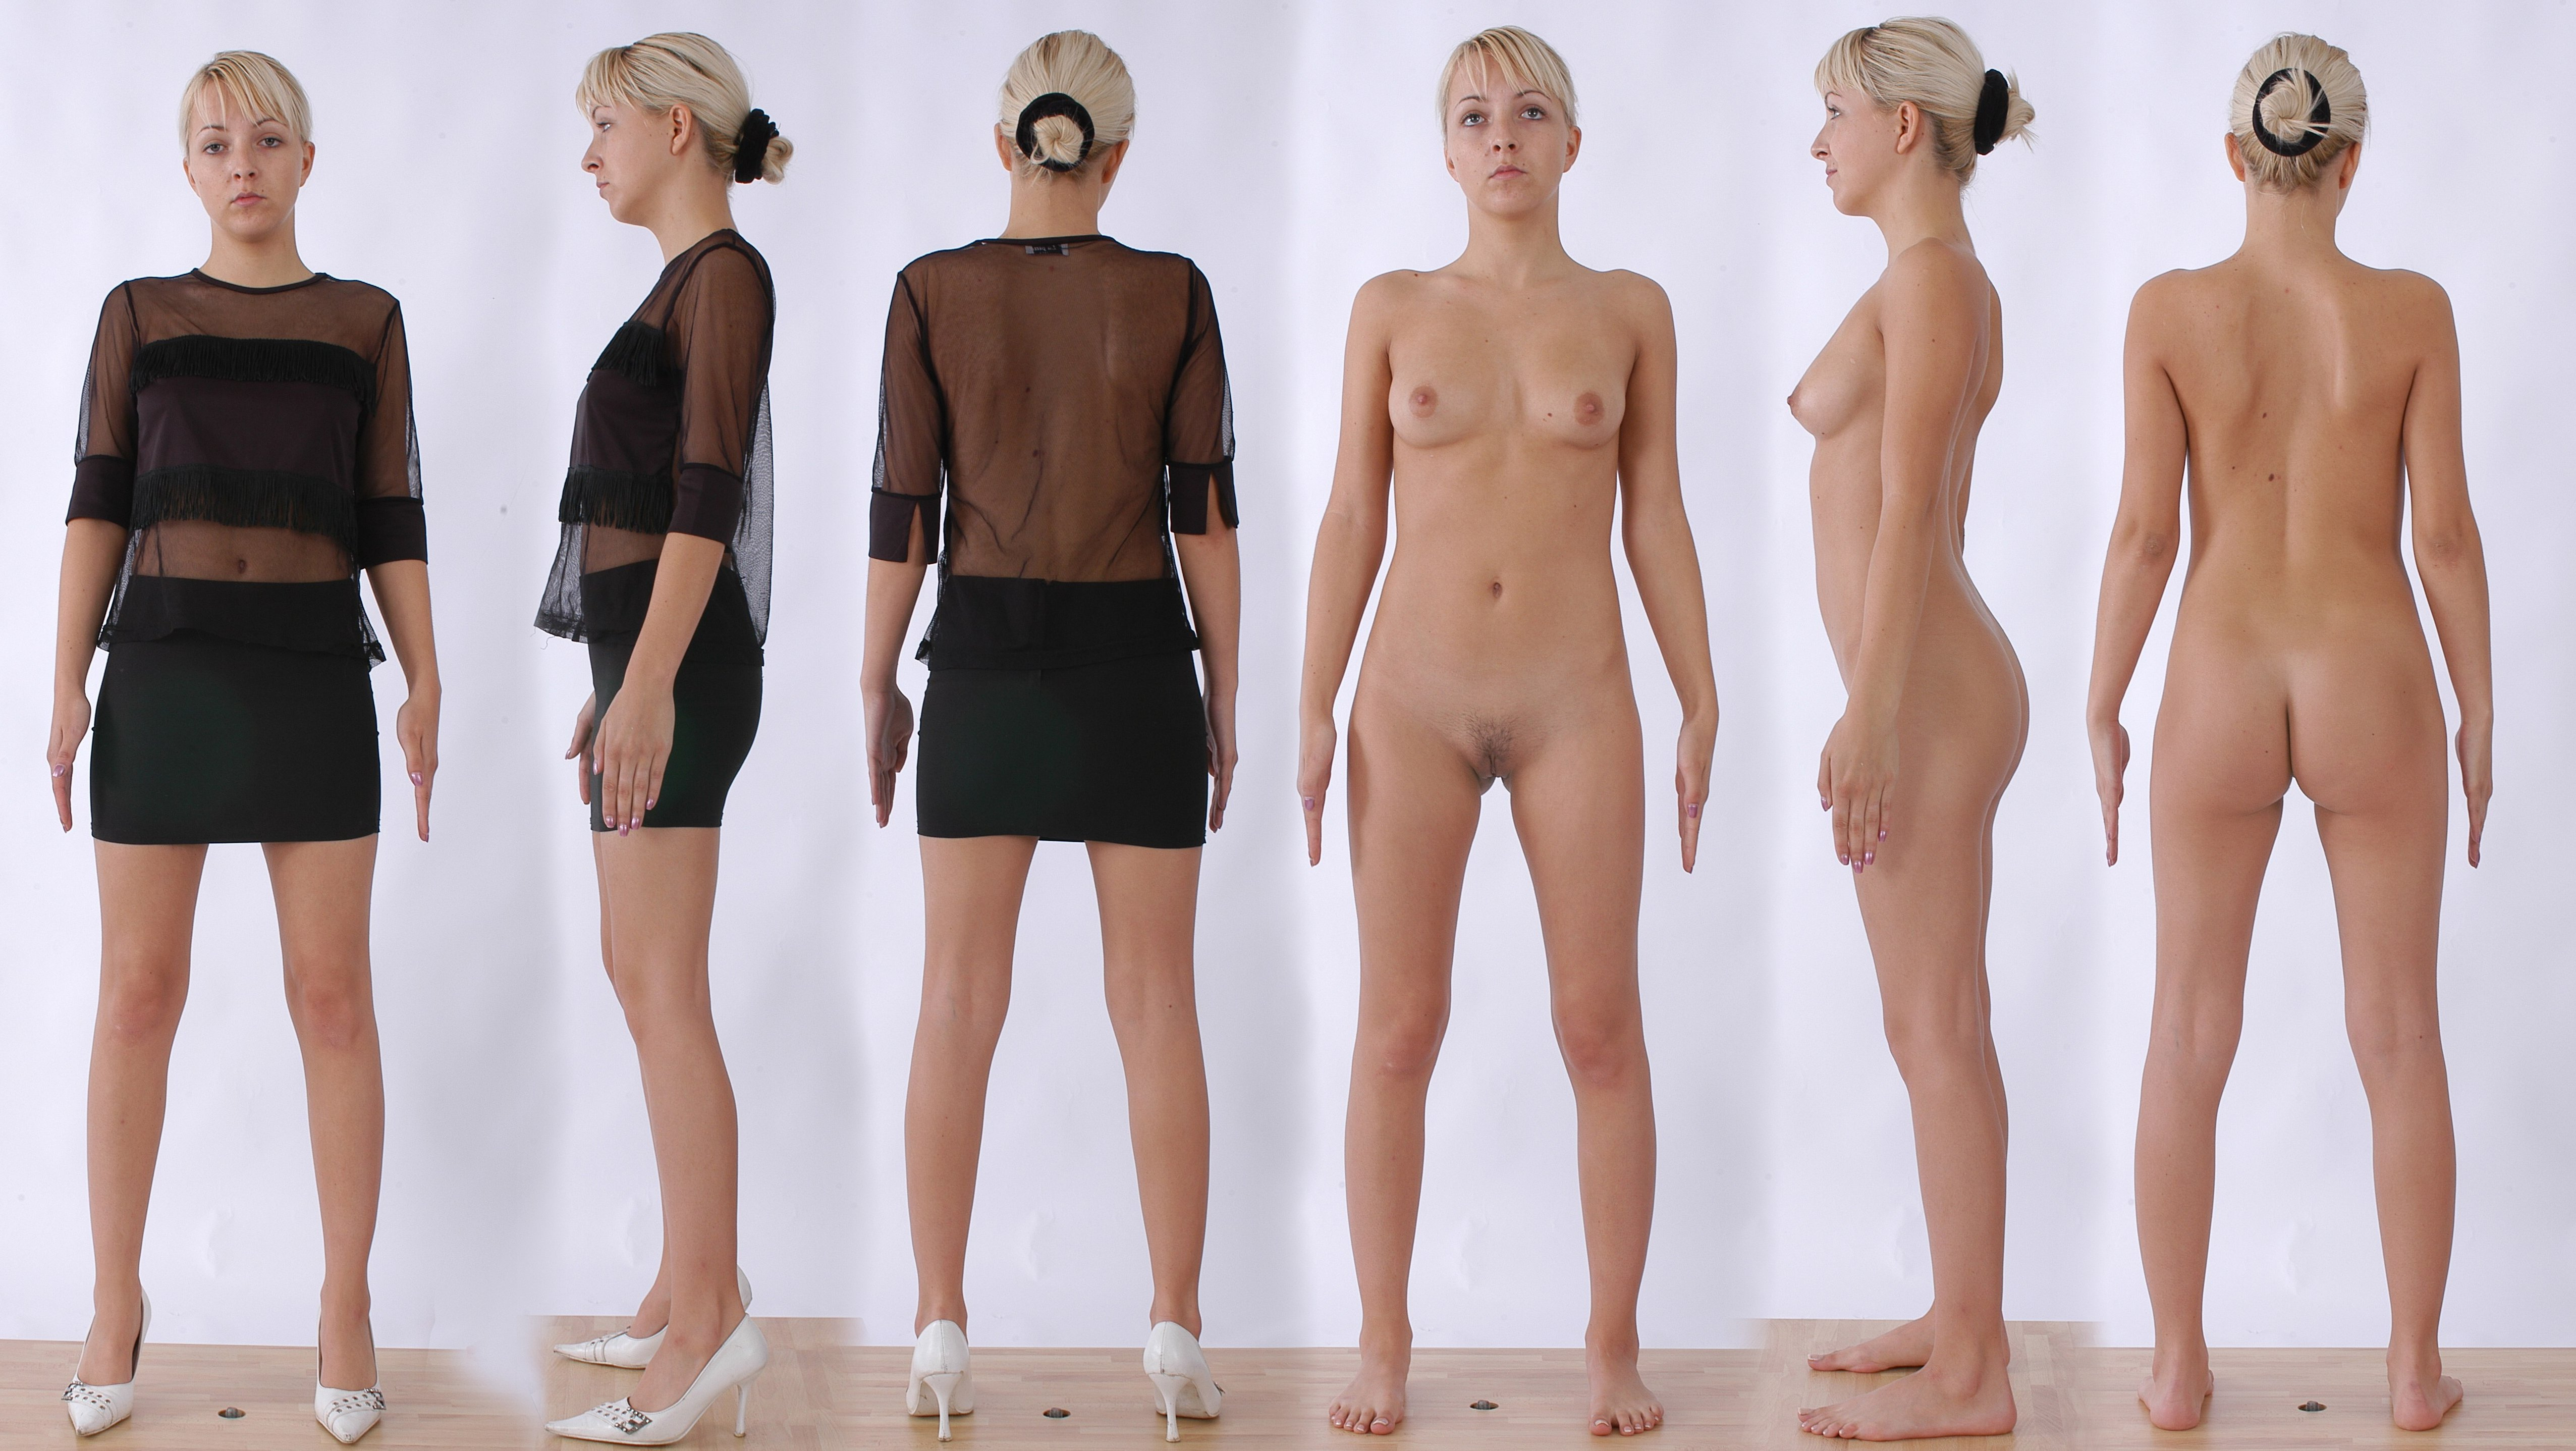 Collection Clothed Unclothed Images Pictures - Amateur Adult Gallery